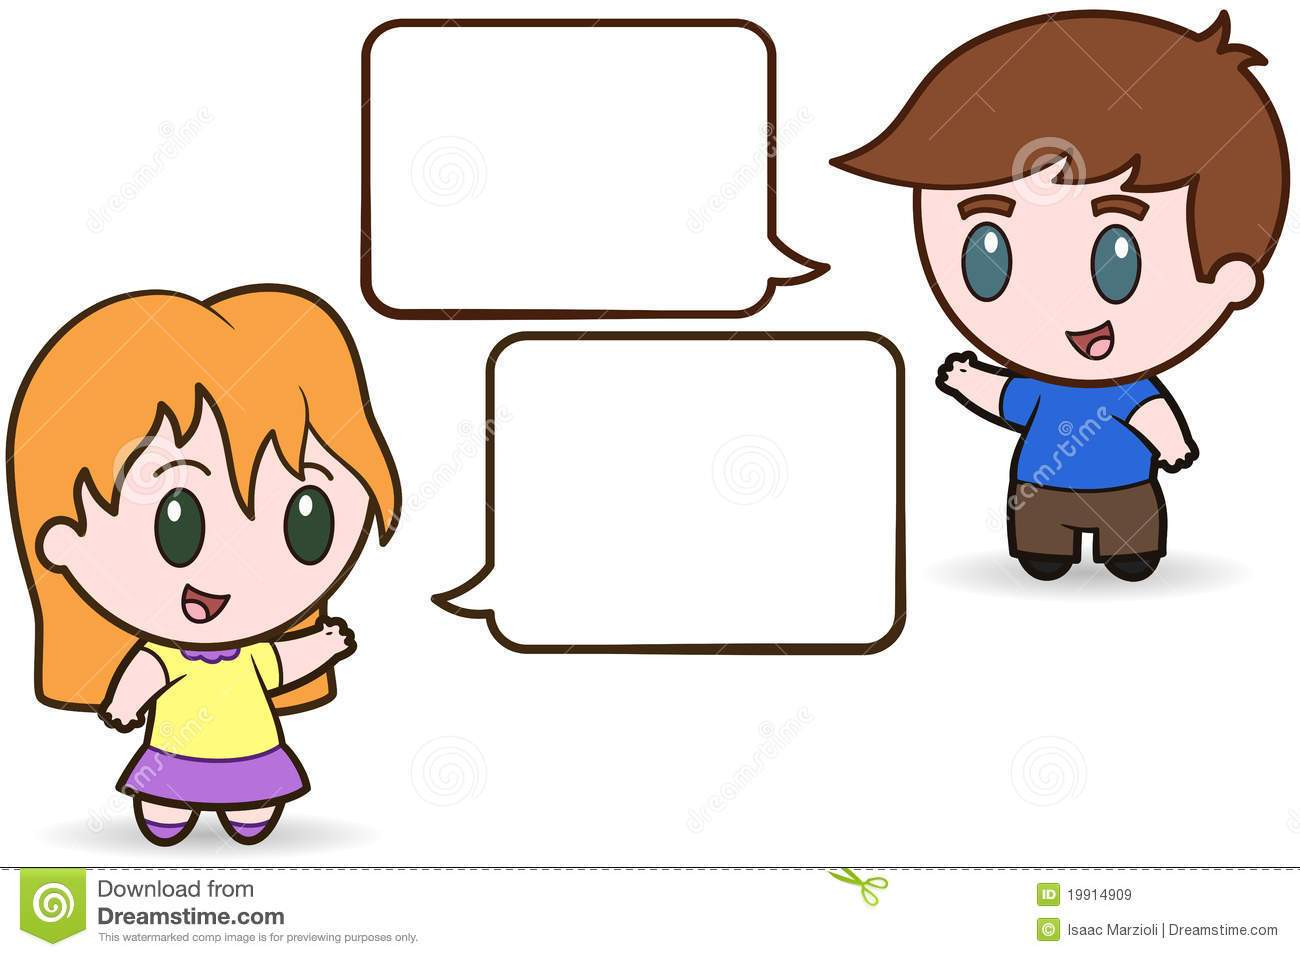 Boy speaking clipart 4 » Clipart Portal.